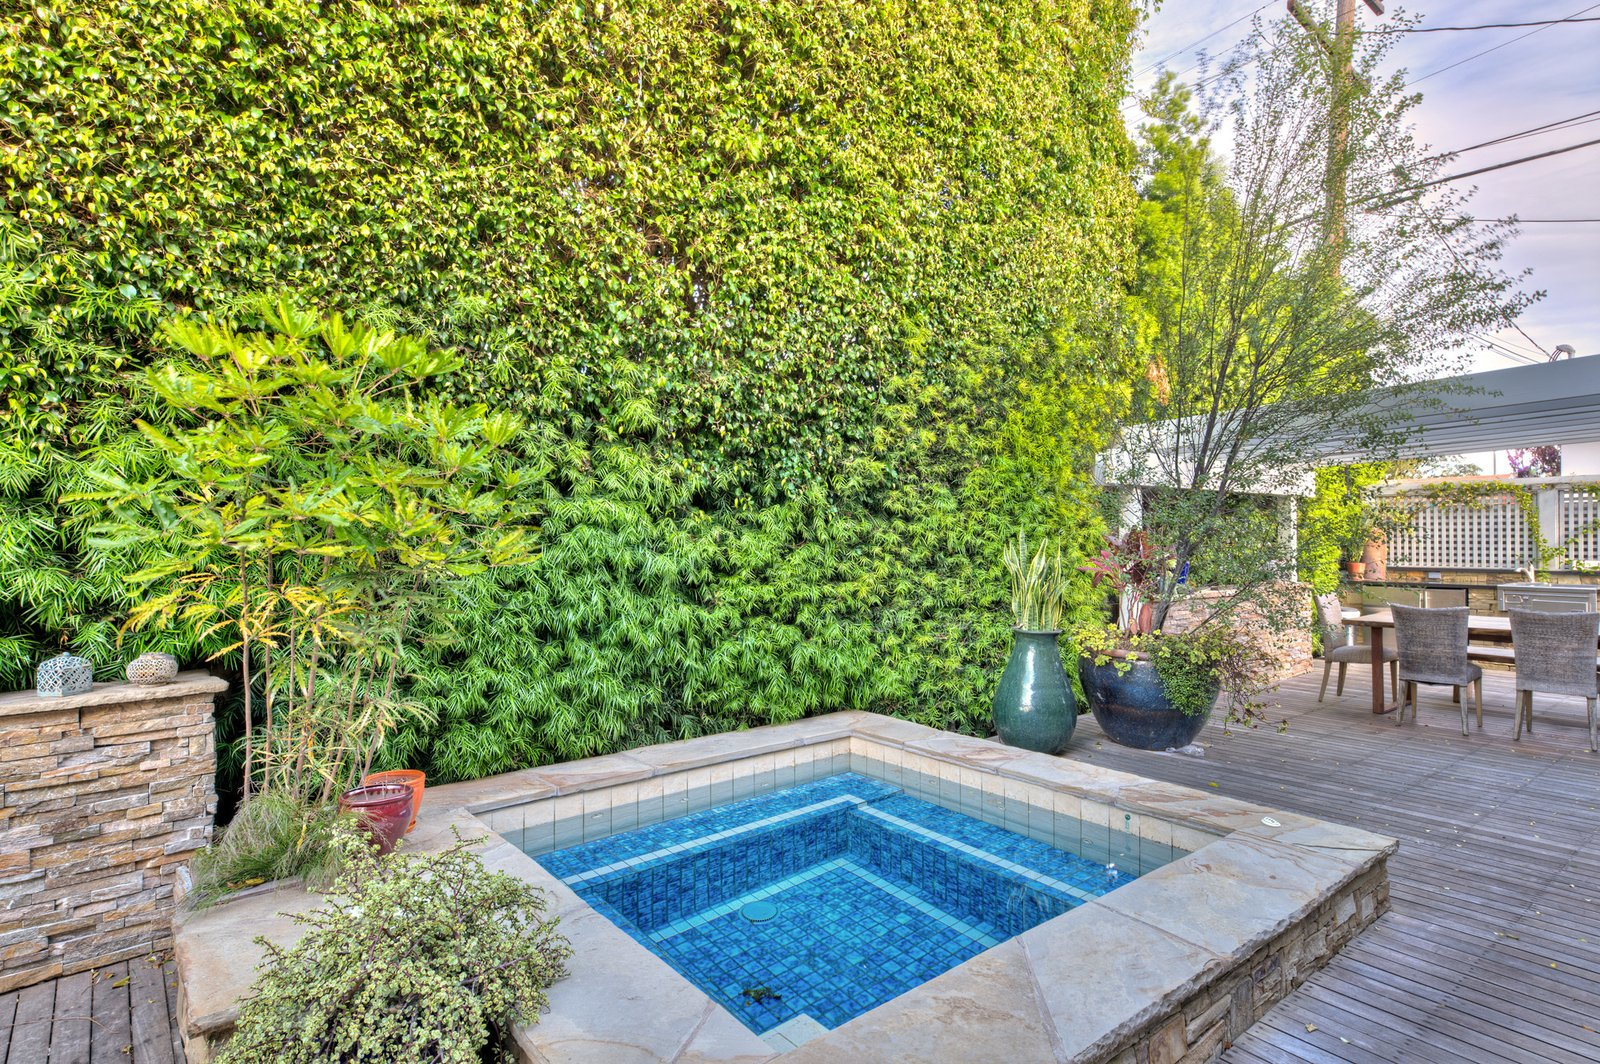 Outdoor The privately enclosed deck is set back behind mature landscaping and also boasts a built-in spa.  Photo 3 of 9 in On the Market For $4.5M, This Venice Beach Compound Captures the Essence of Indoor-Outdoor Living